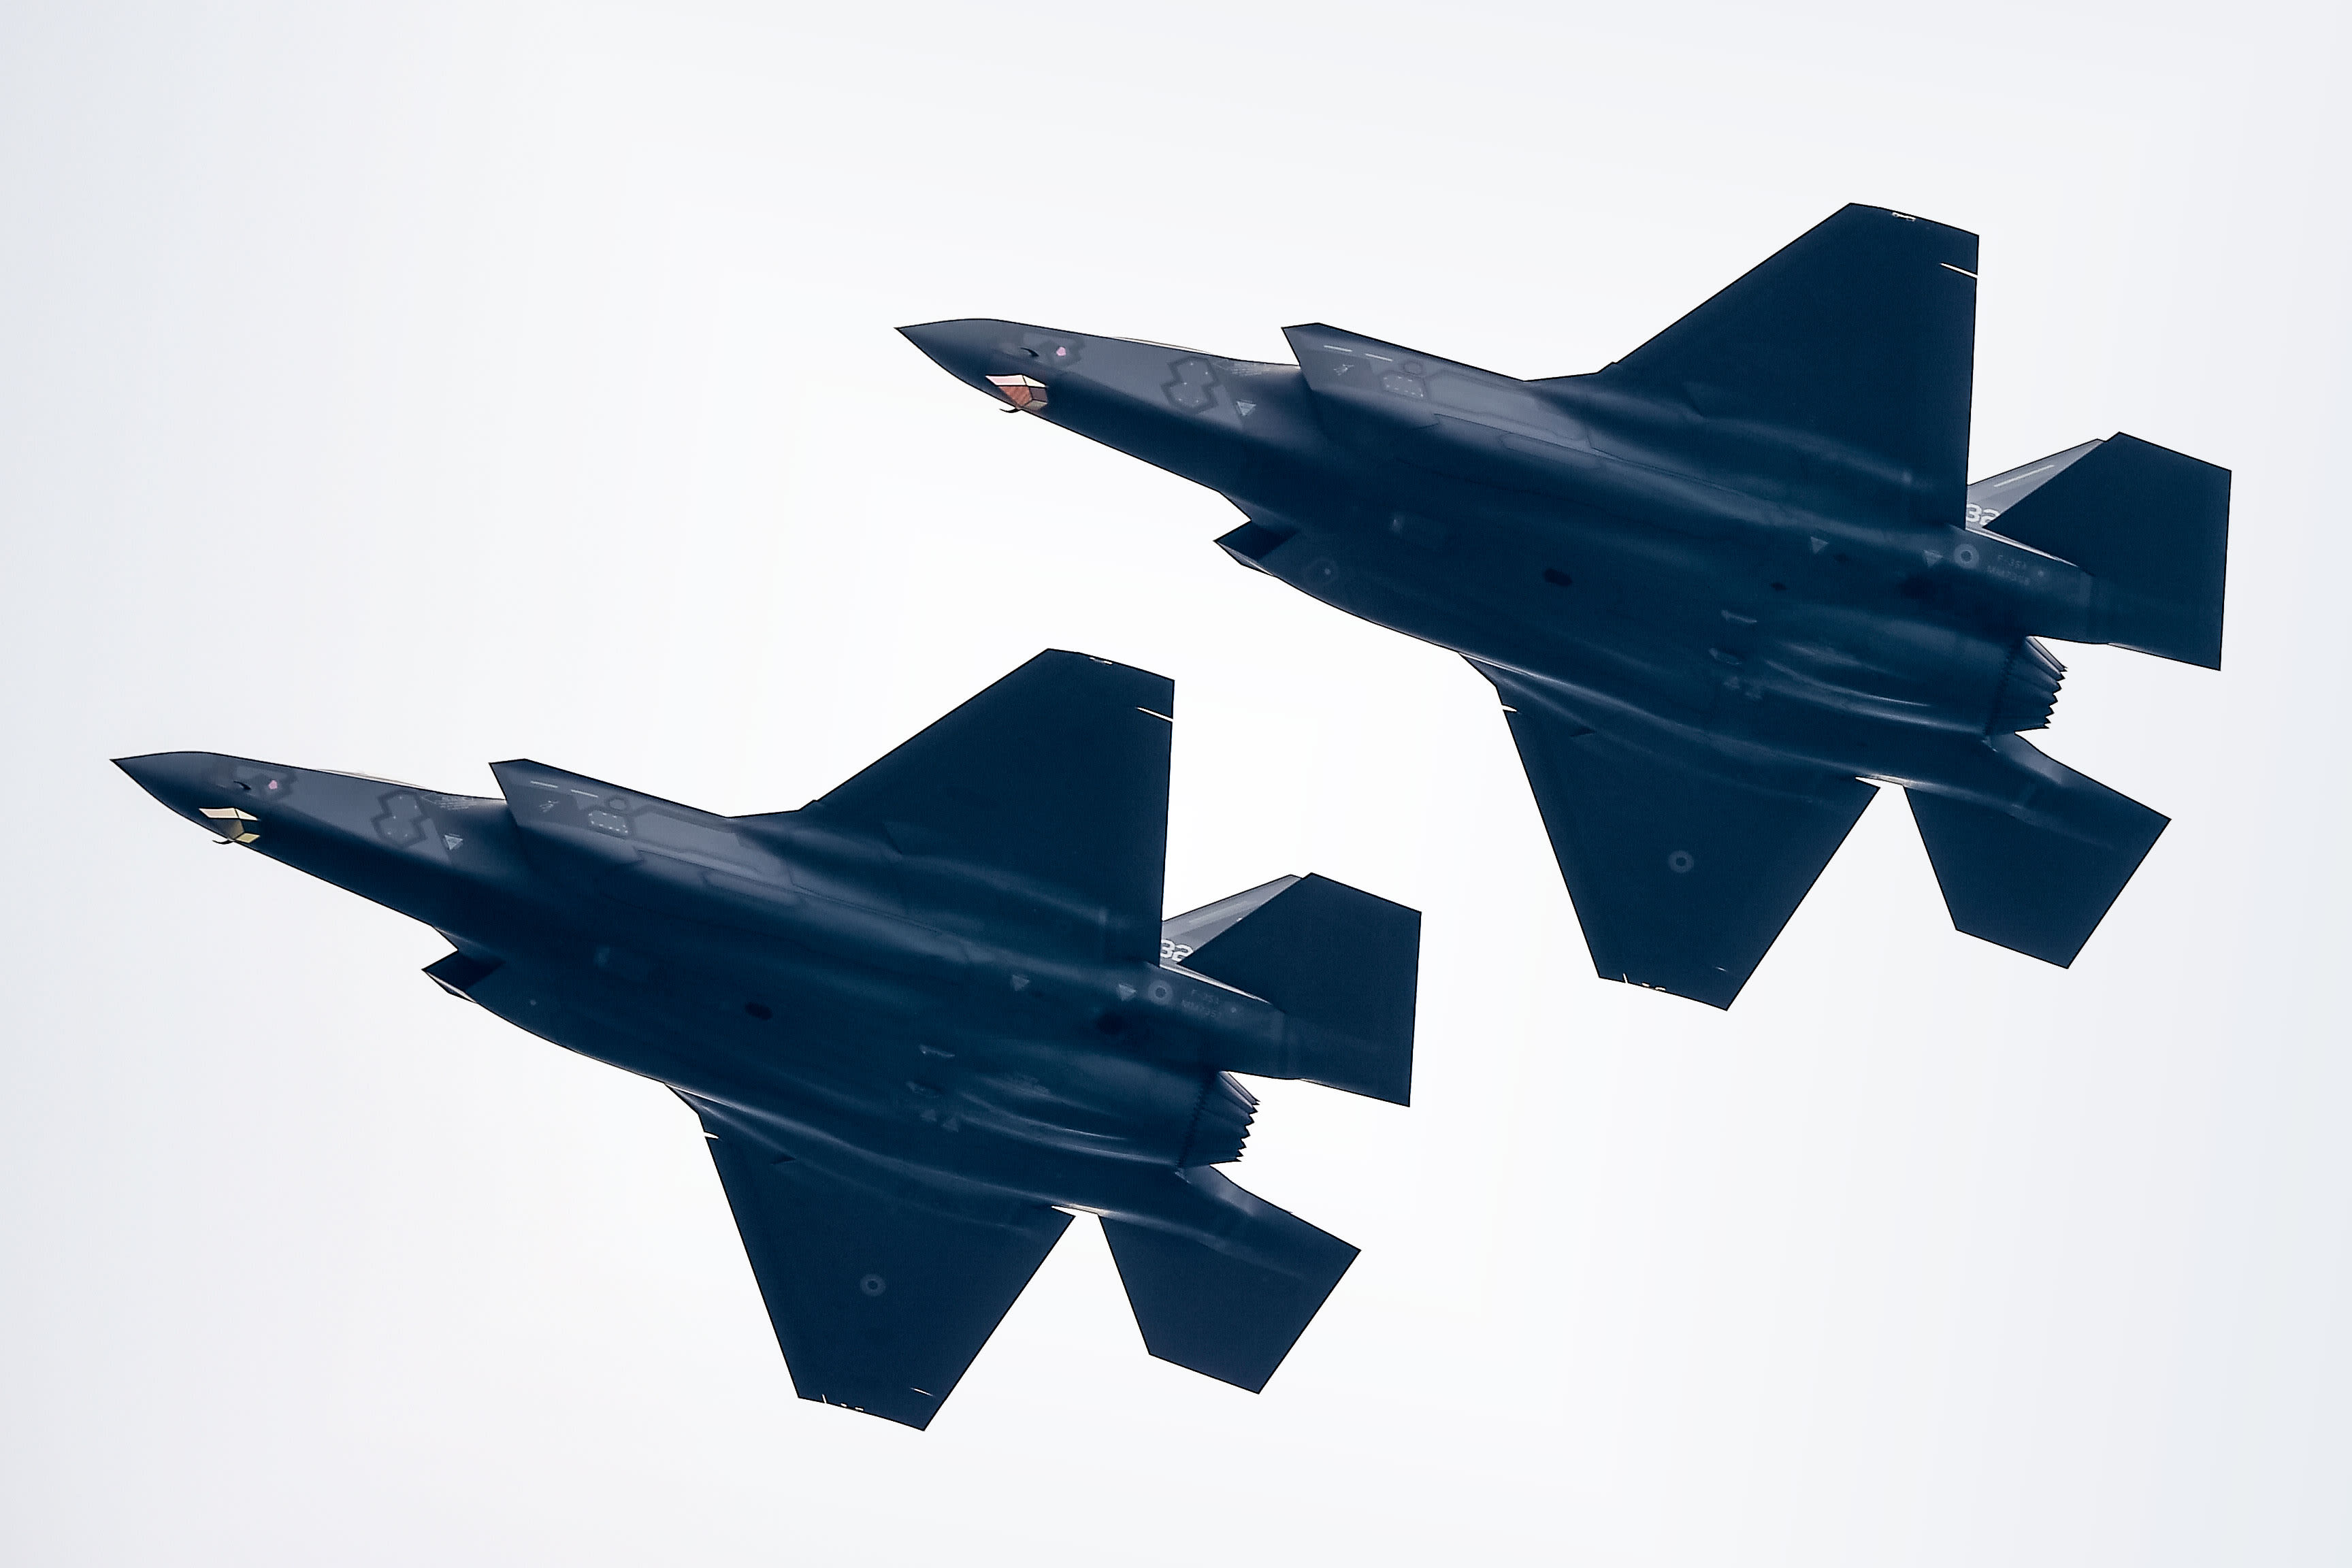 Trader says Lockheed Martin is the defense stock to play. Here's why